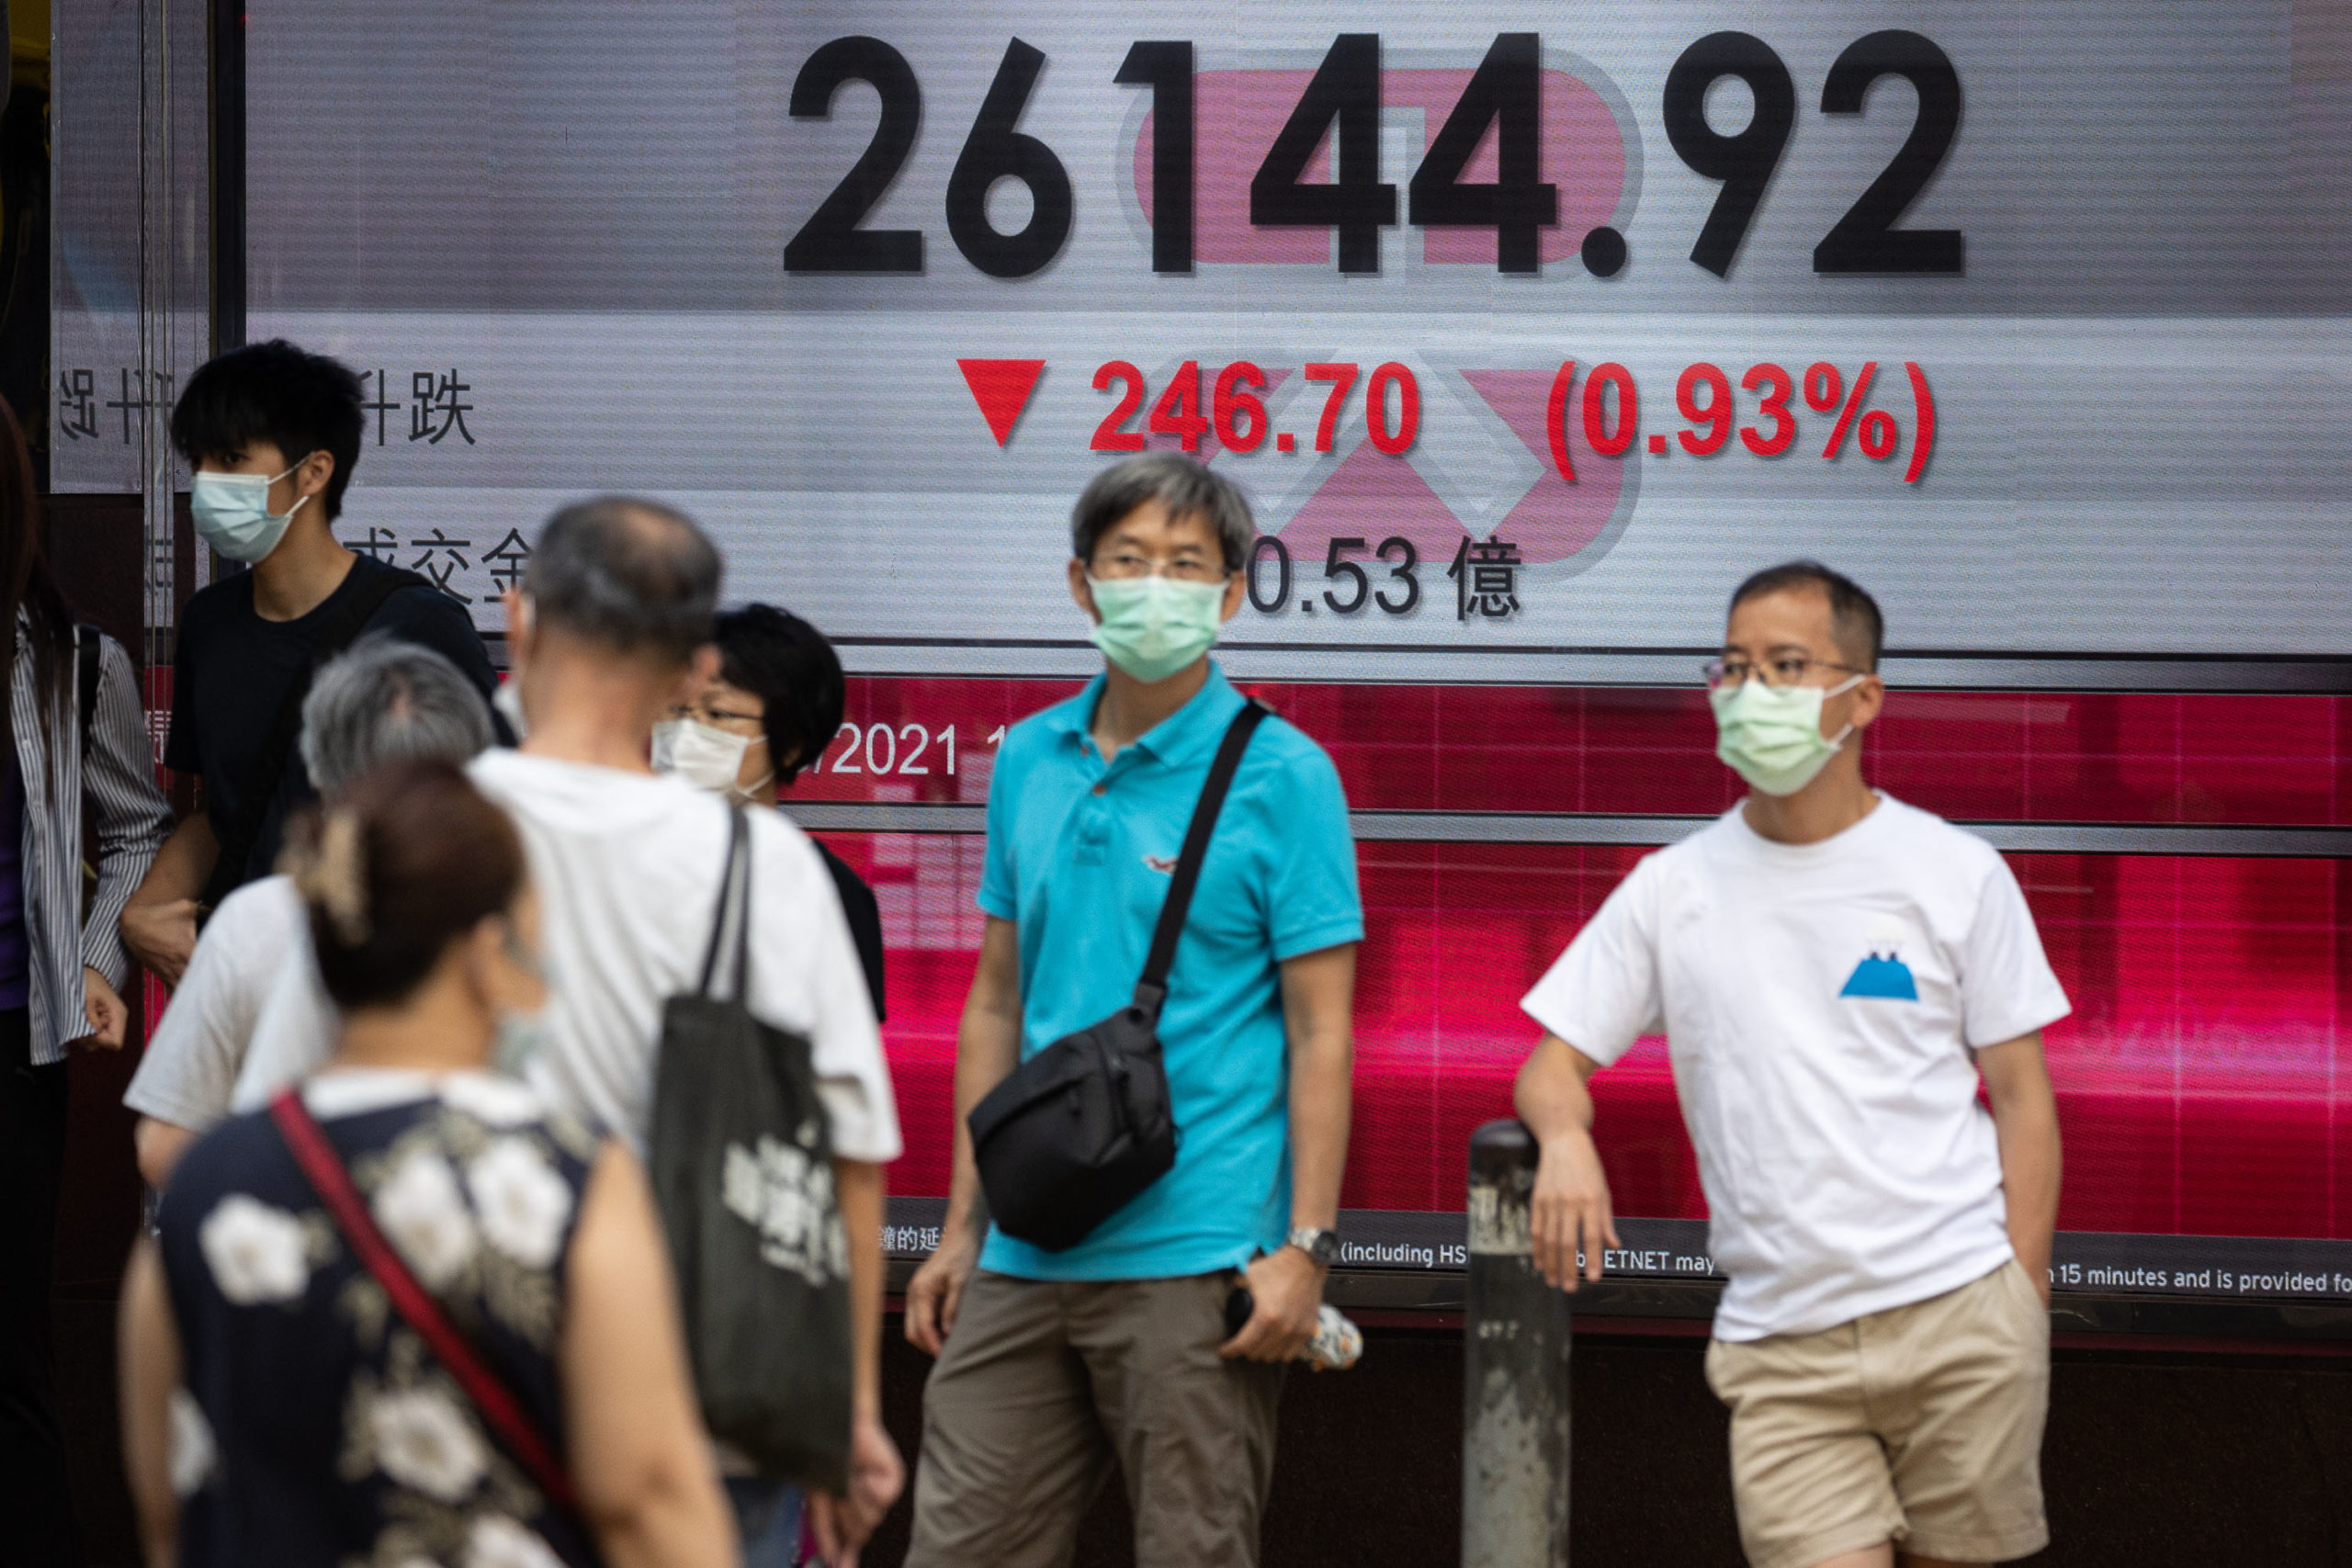 BUSINESS MAVERICK OP-ED: Is China going to teach the West an economic trick or two?